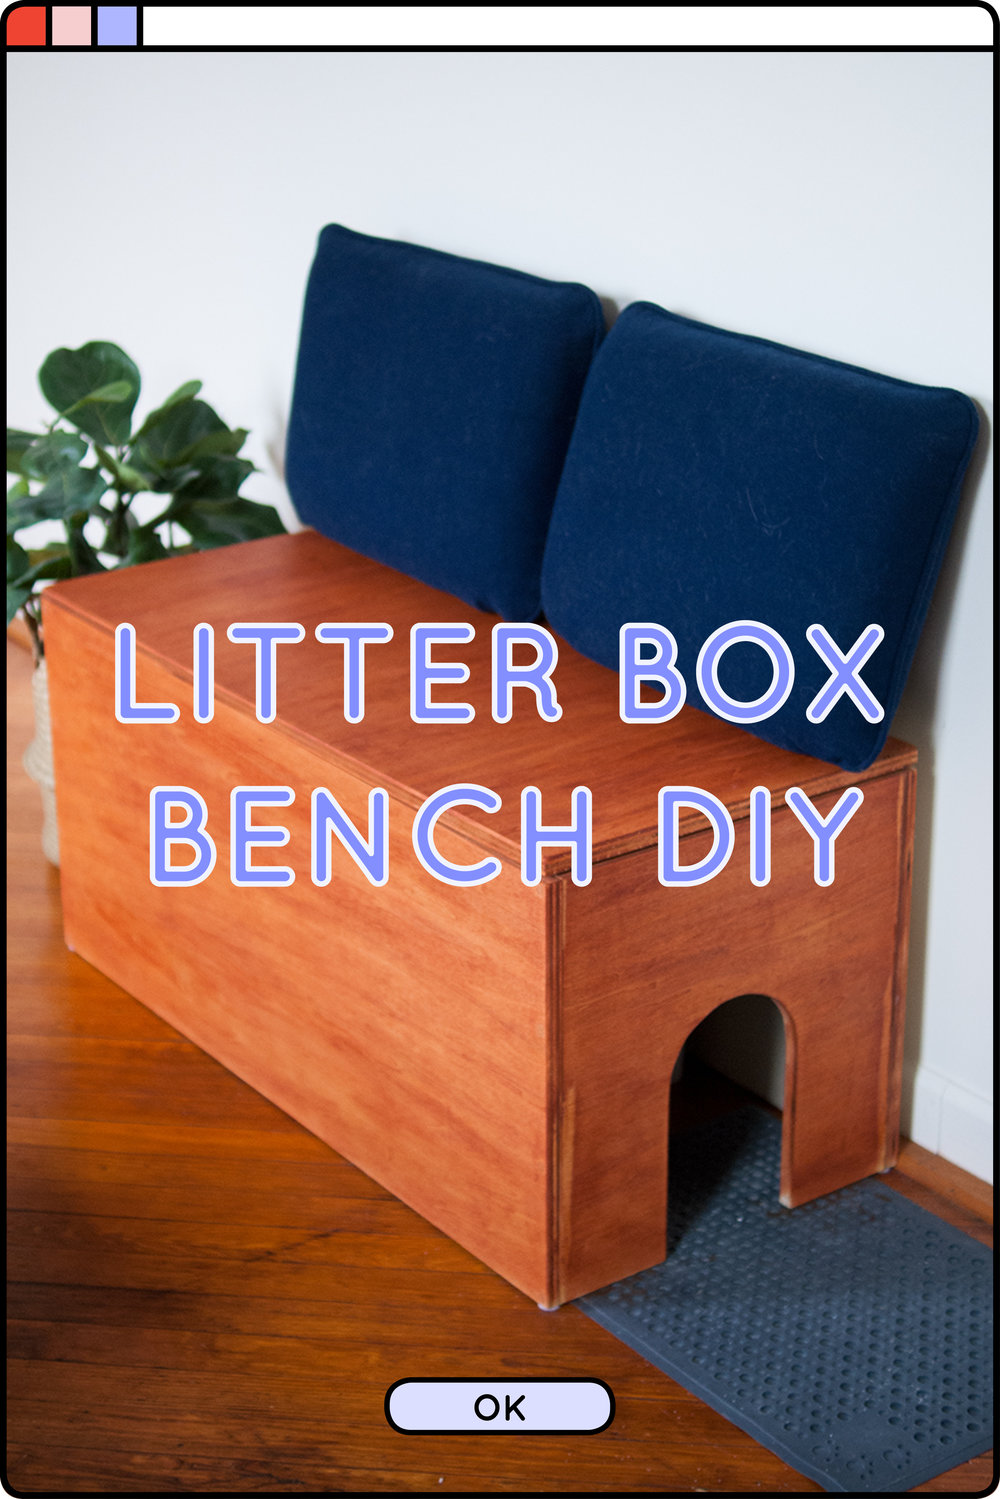 Make a DIY litter box cover bench for your cat and yourself! Covers up your kitty's litter box and supplies, while adding additional functionality by adding seating to your home - #DIY #kitty #catDIY #litterbox #litterboxDIY #DIYbench #litterboxbench #petdiy